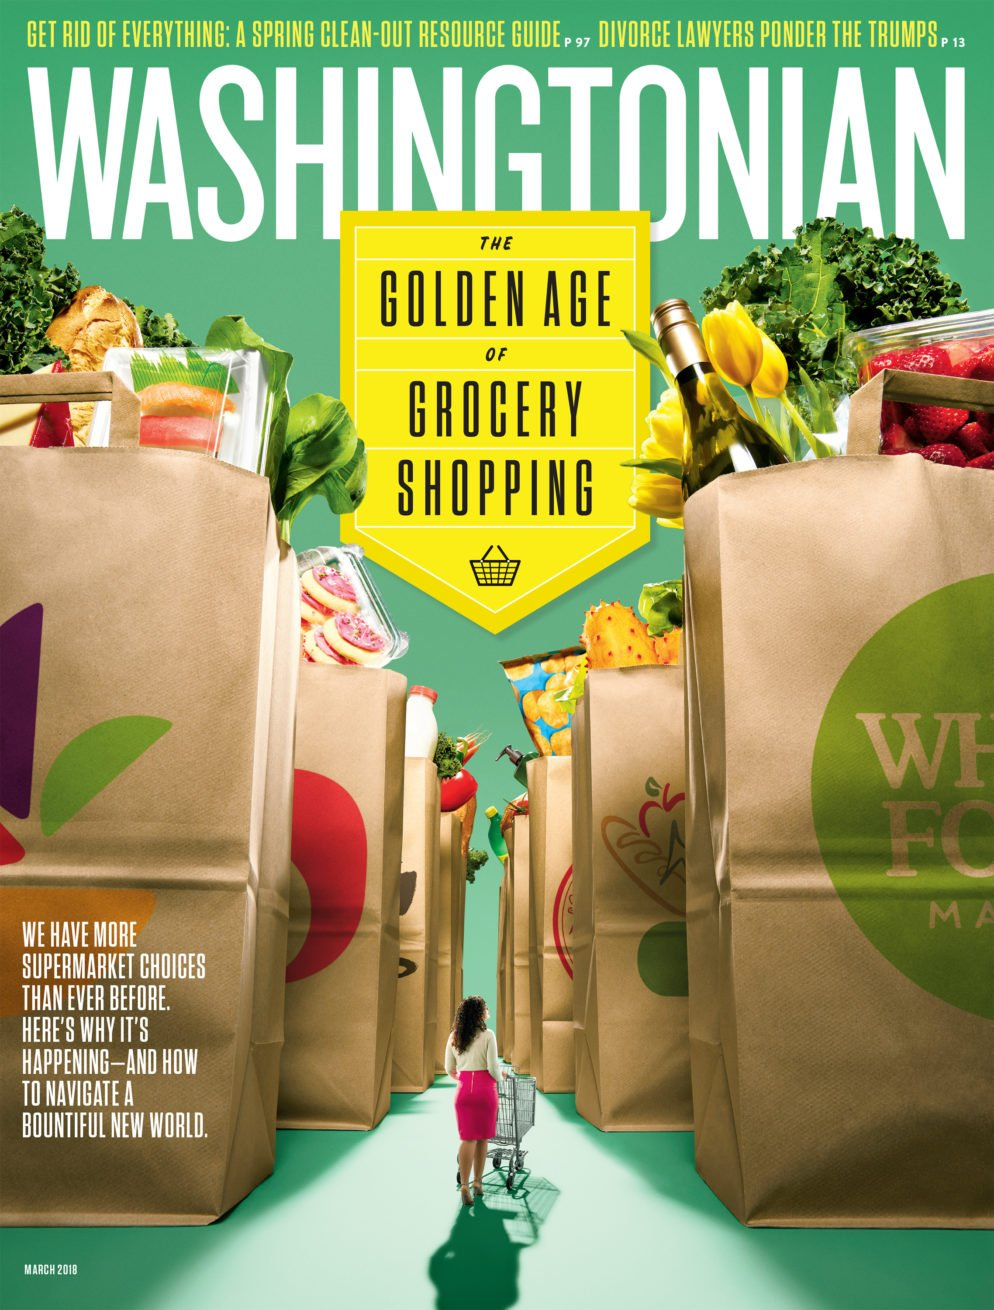 March 2018: The Golden Age of Grocery Shopping | Washingtonian